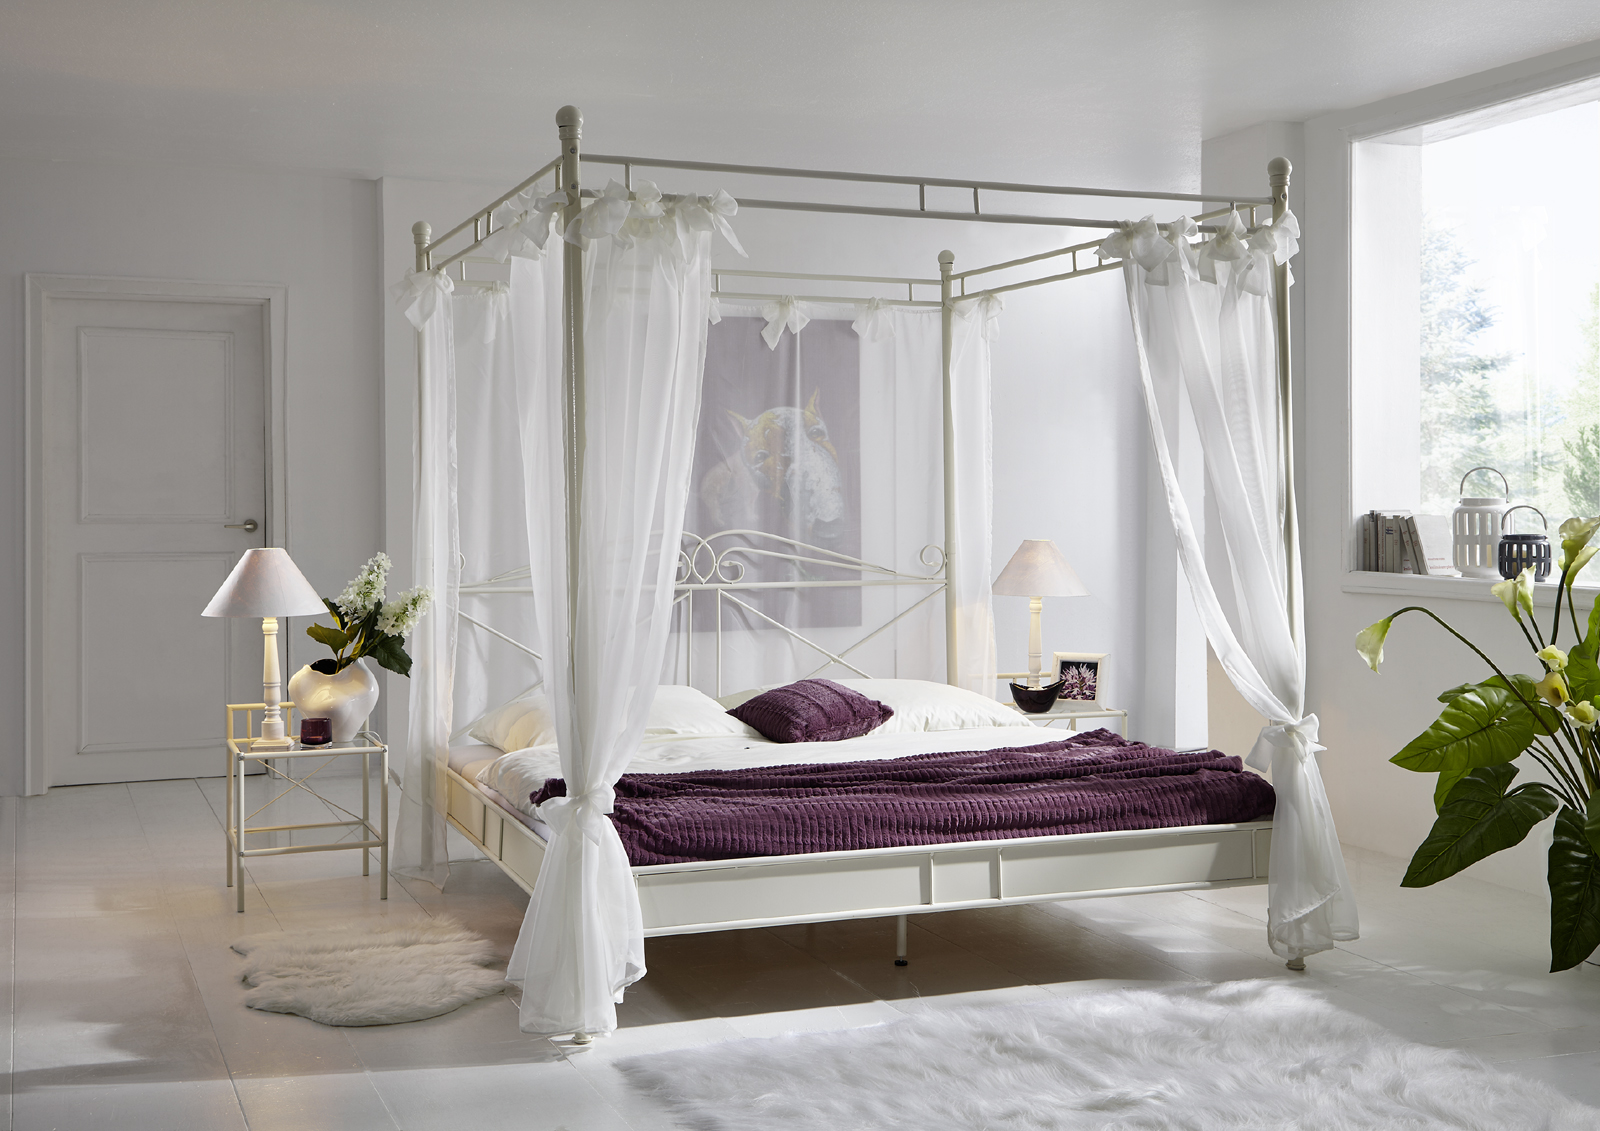 sam design himmelbett 140cm creme wei venezia. Black Bedroom Furniture Sets. Home Design Ideas